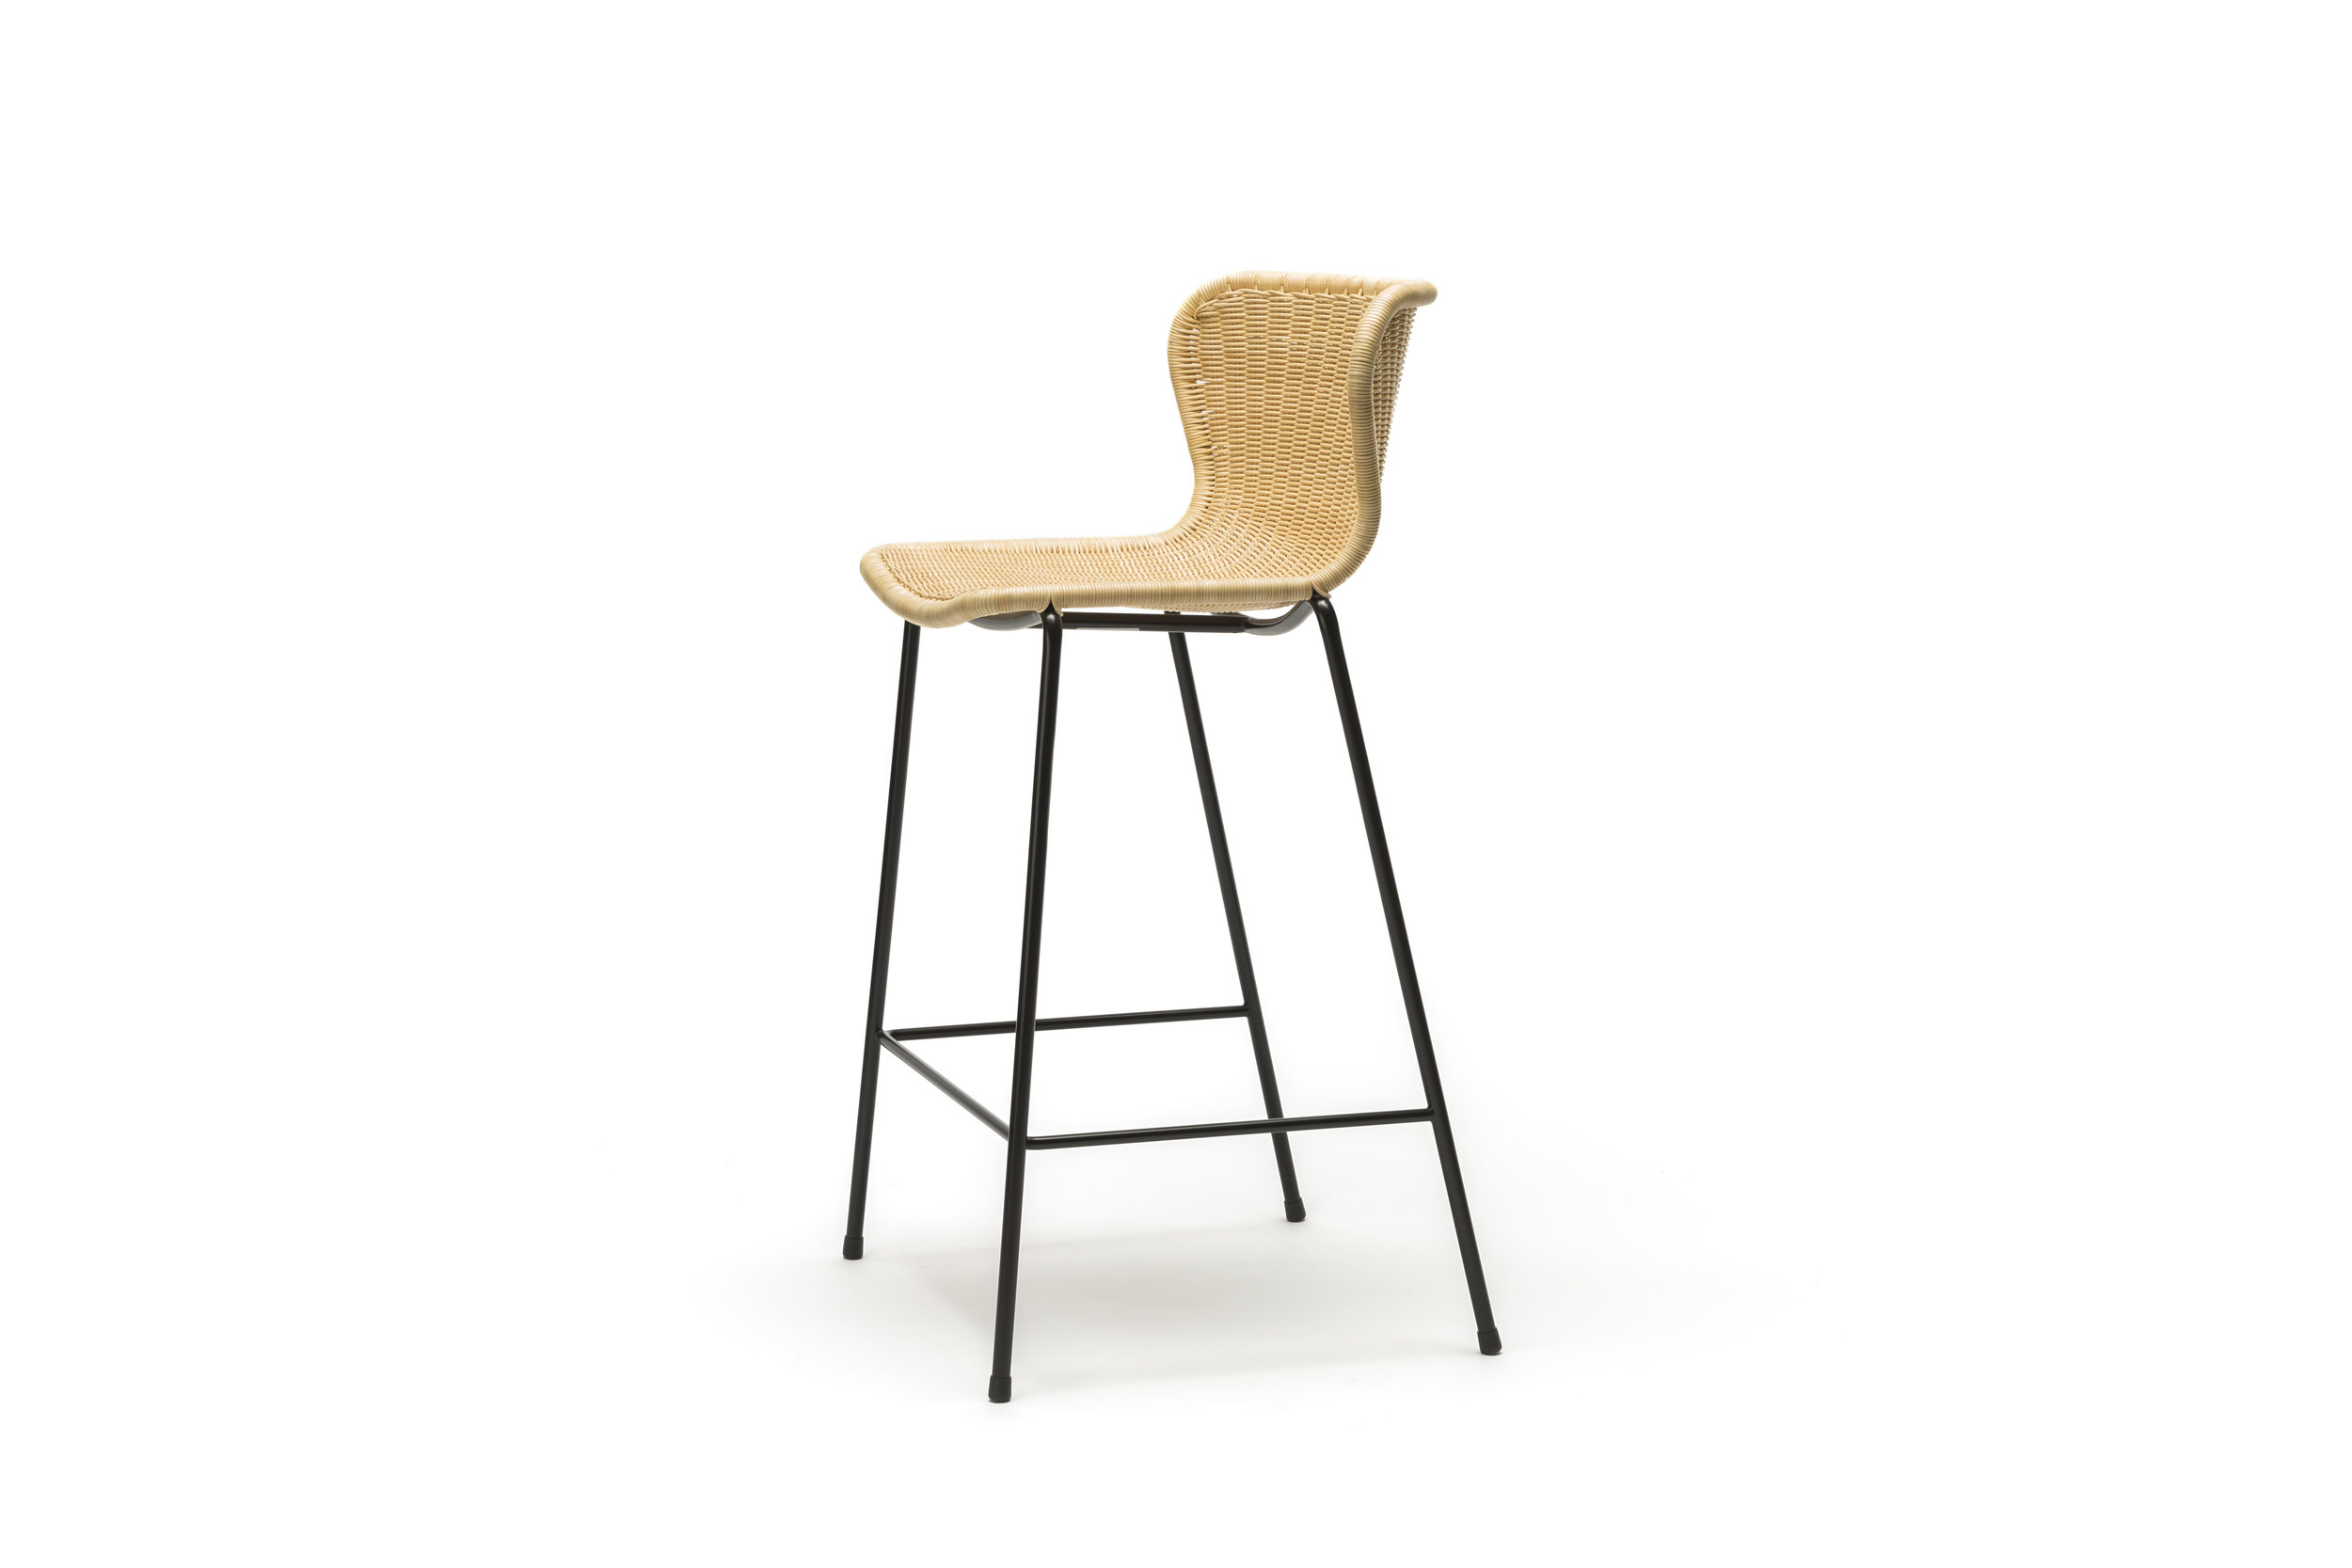 Indoor C603 Stool - Natural Rattan